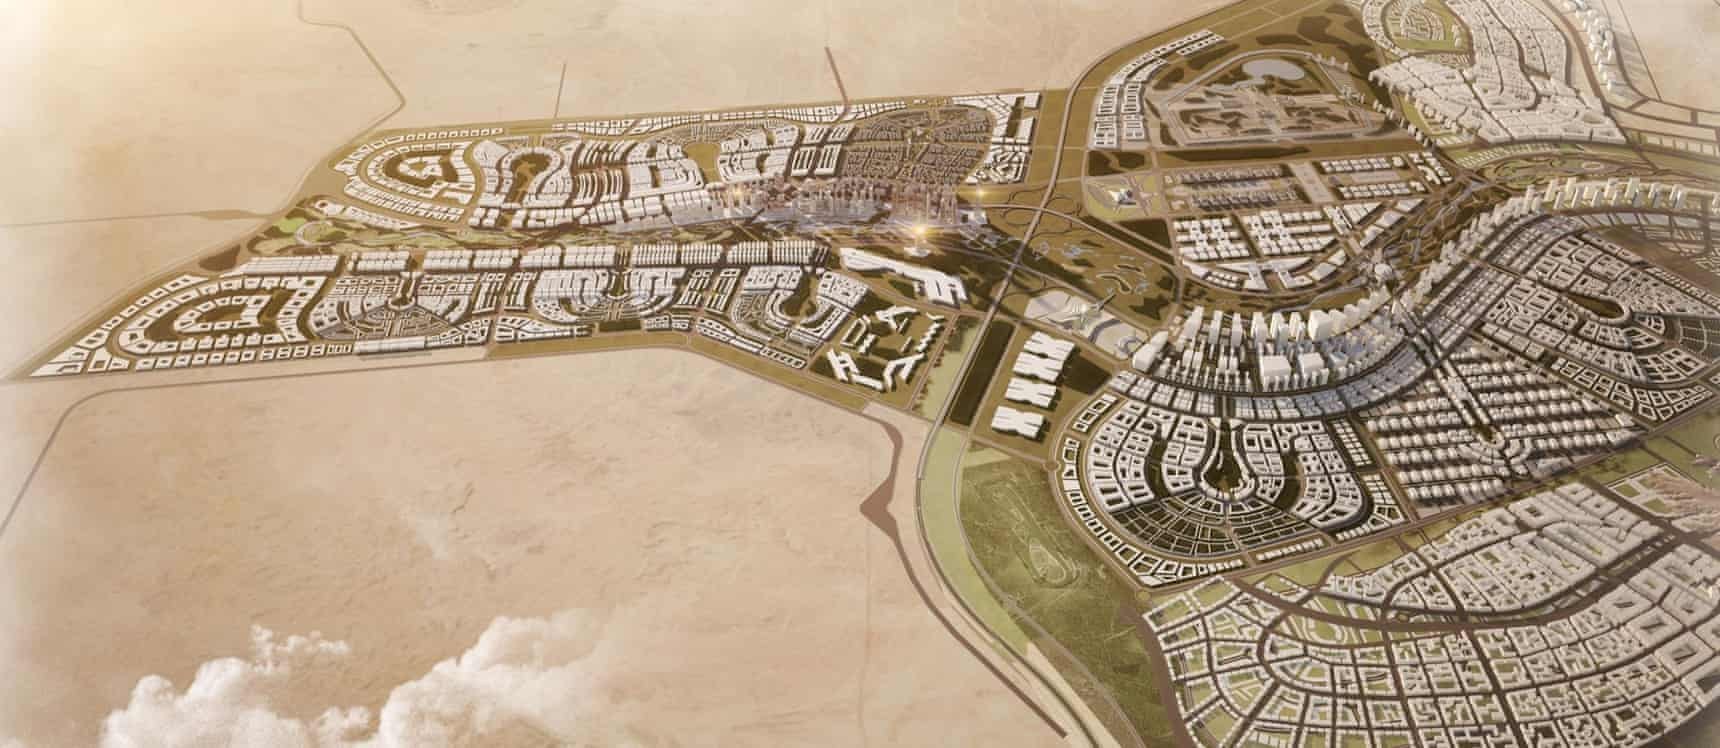 A graphic of the new Egyptian capital shows completed residential districts, as well as the planned tallest building in Africa at 345 metres high. Photograph: ACUD